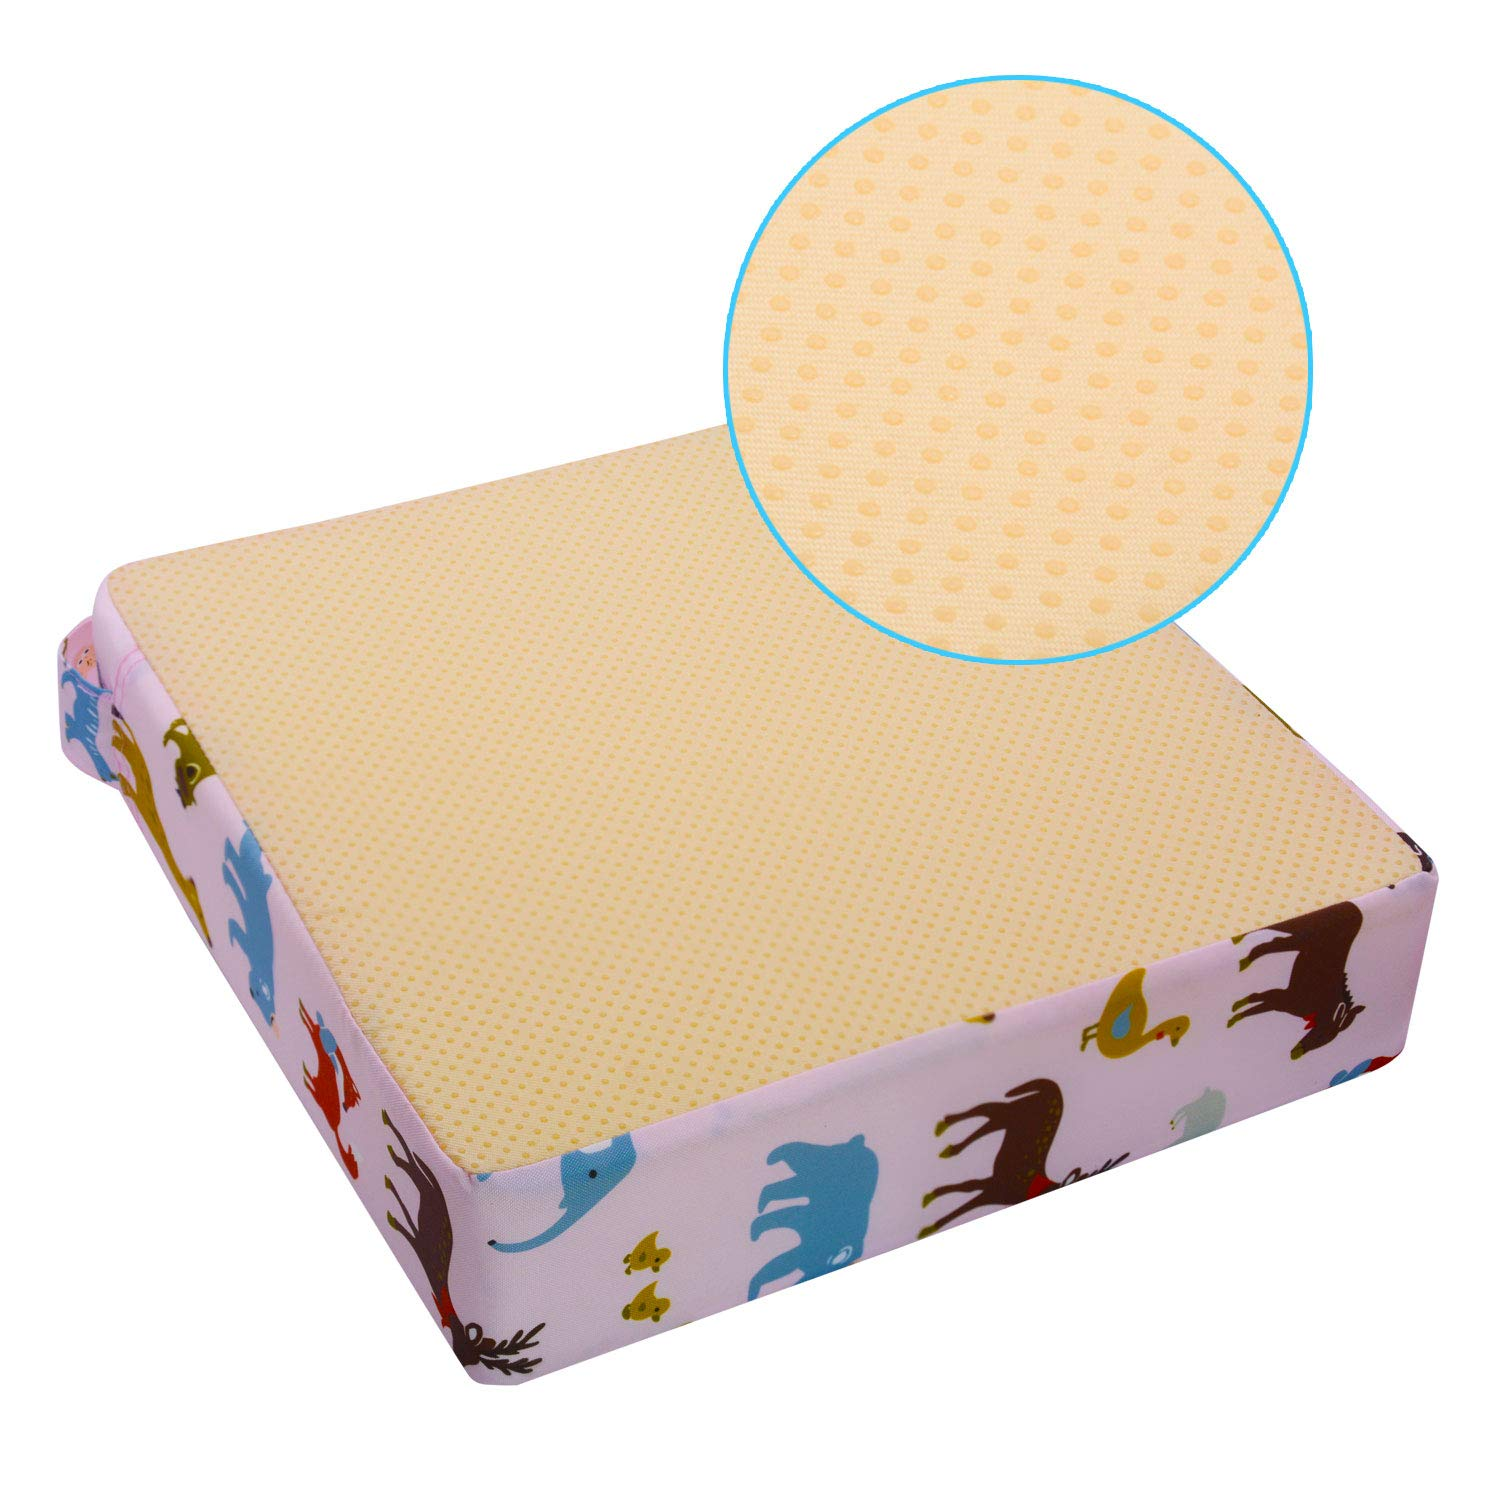 Portable Baby Highchair Booster Cushion for Toddler Kids Infant Washable Thick Chair Seat Pad Cloth Strap VoiceFly High Chair Cushion Starry Sky